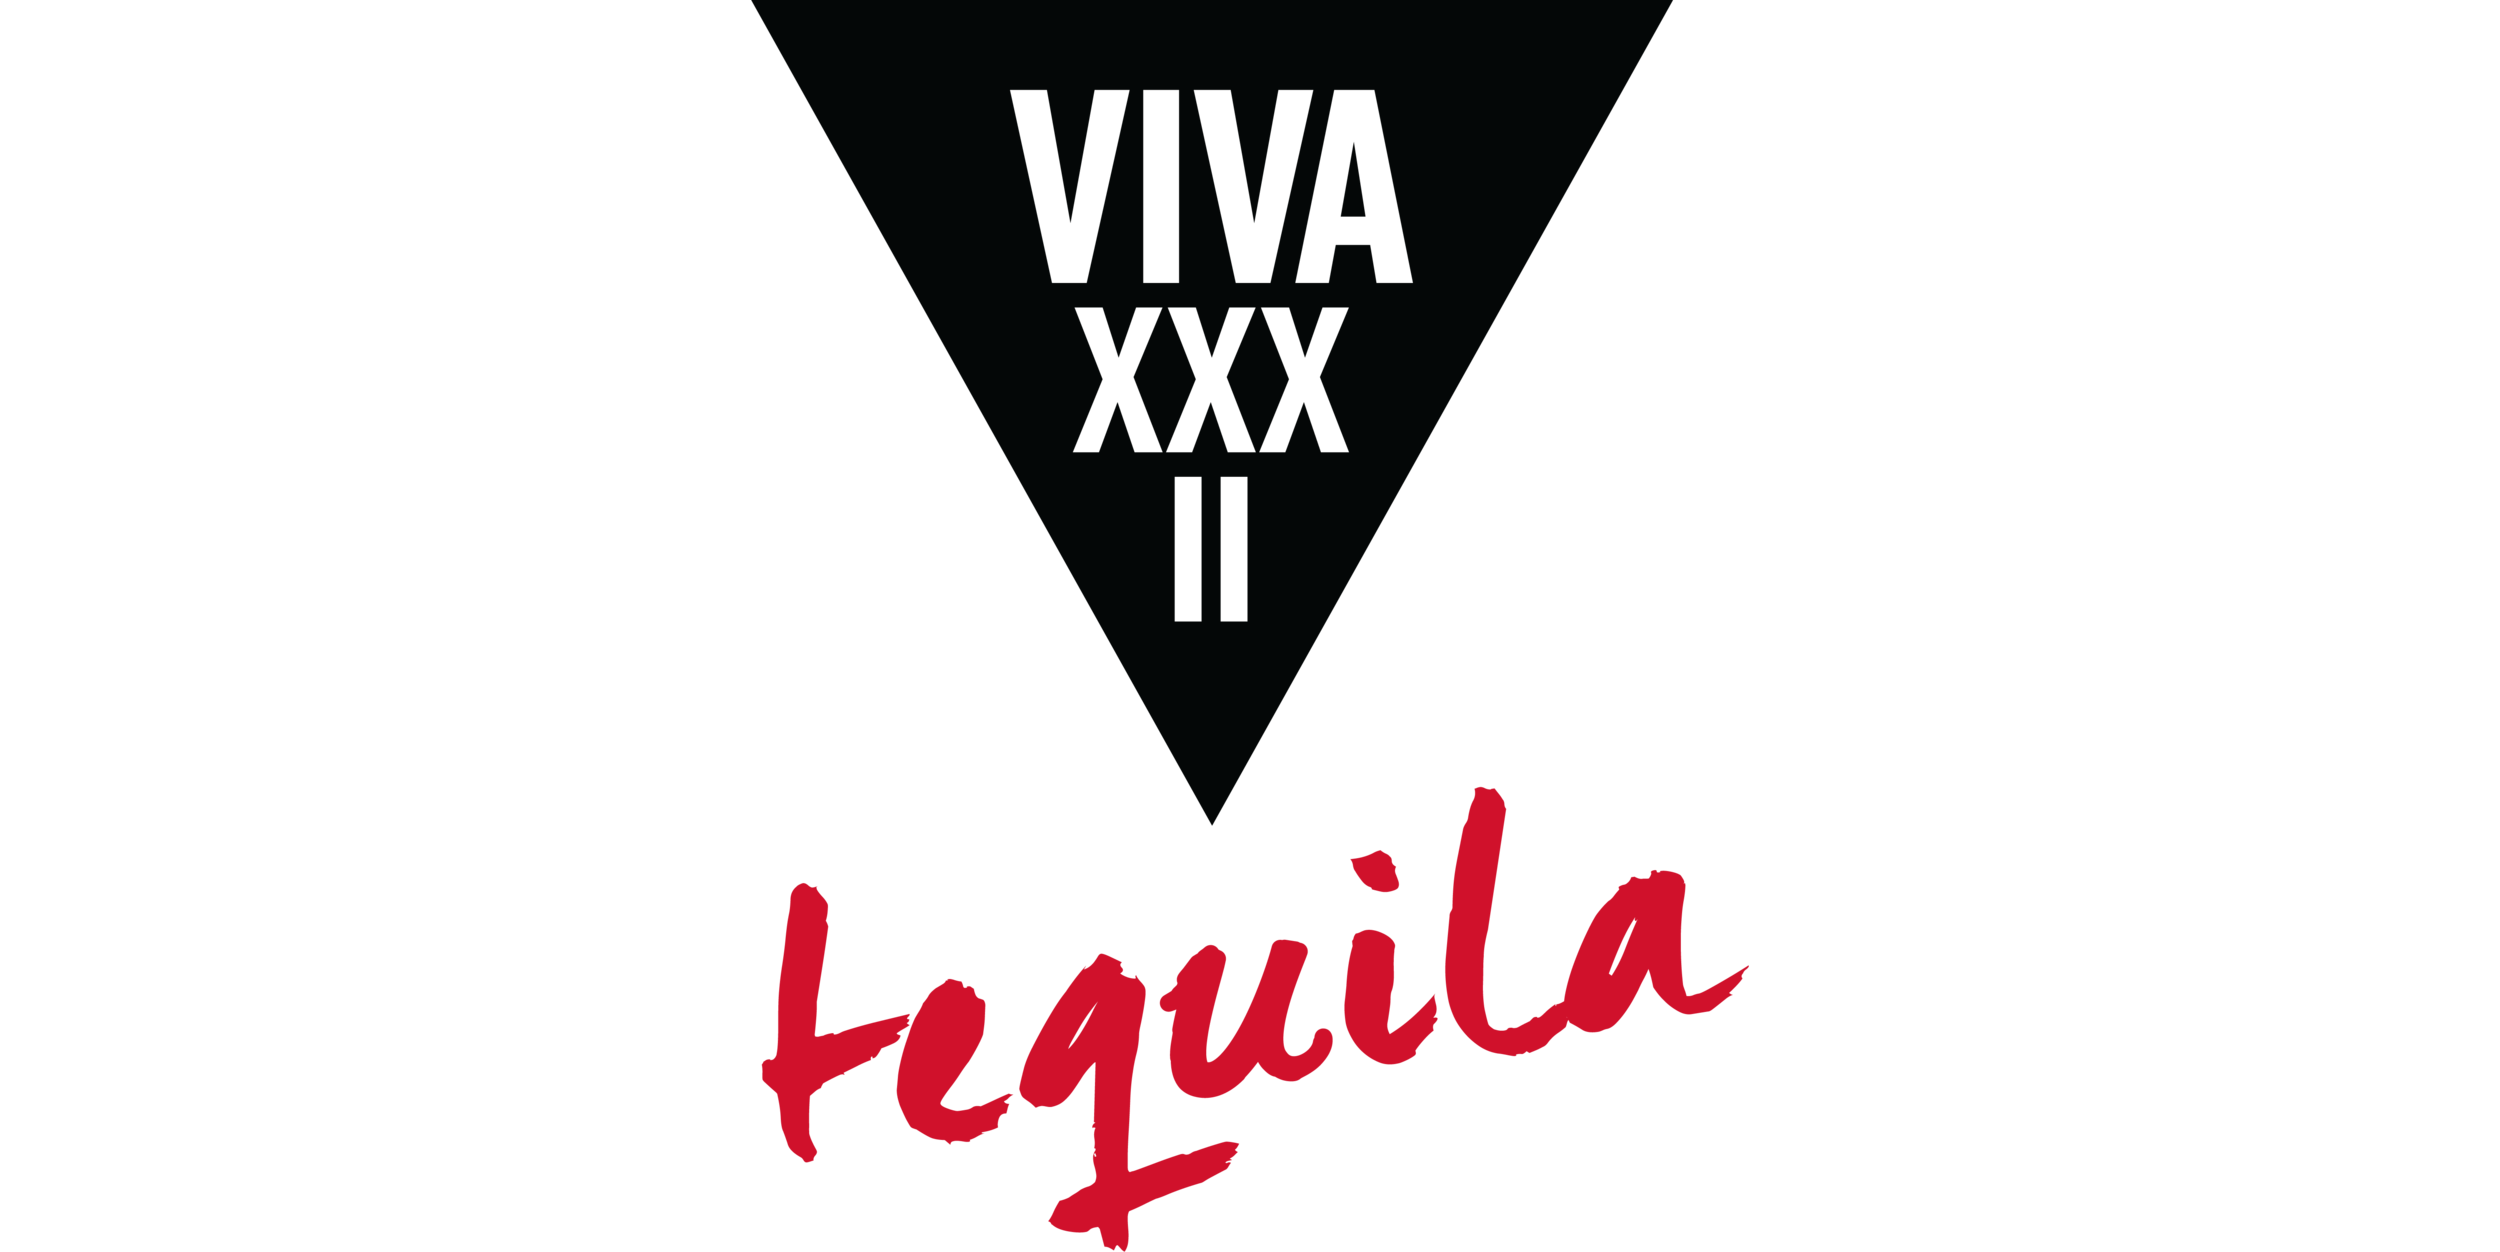 - VIVA is an award-winning, premium tequila meant to sip and savor, but priced to indulge.